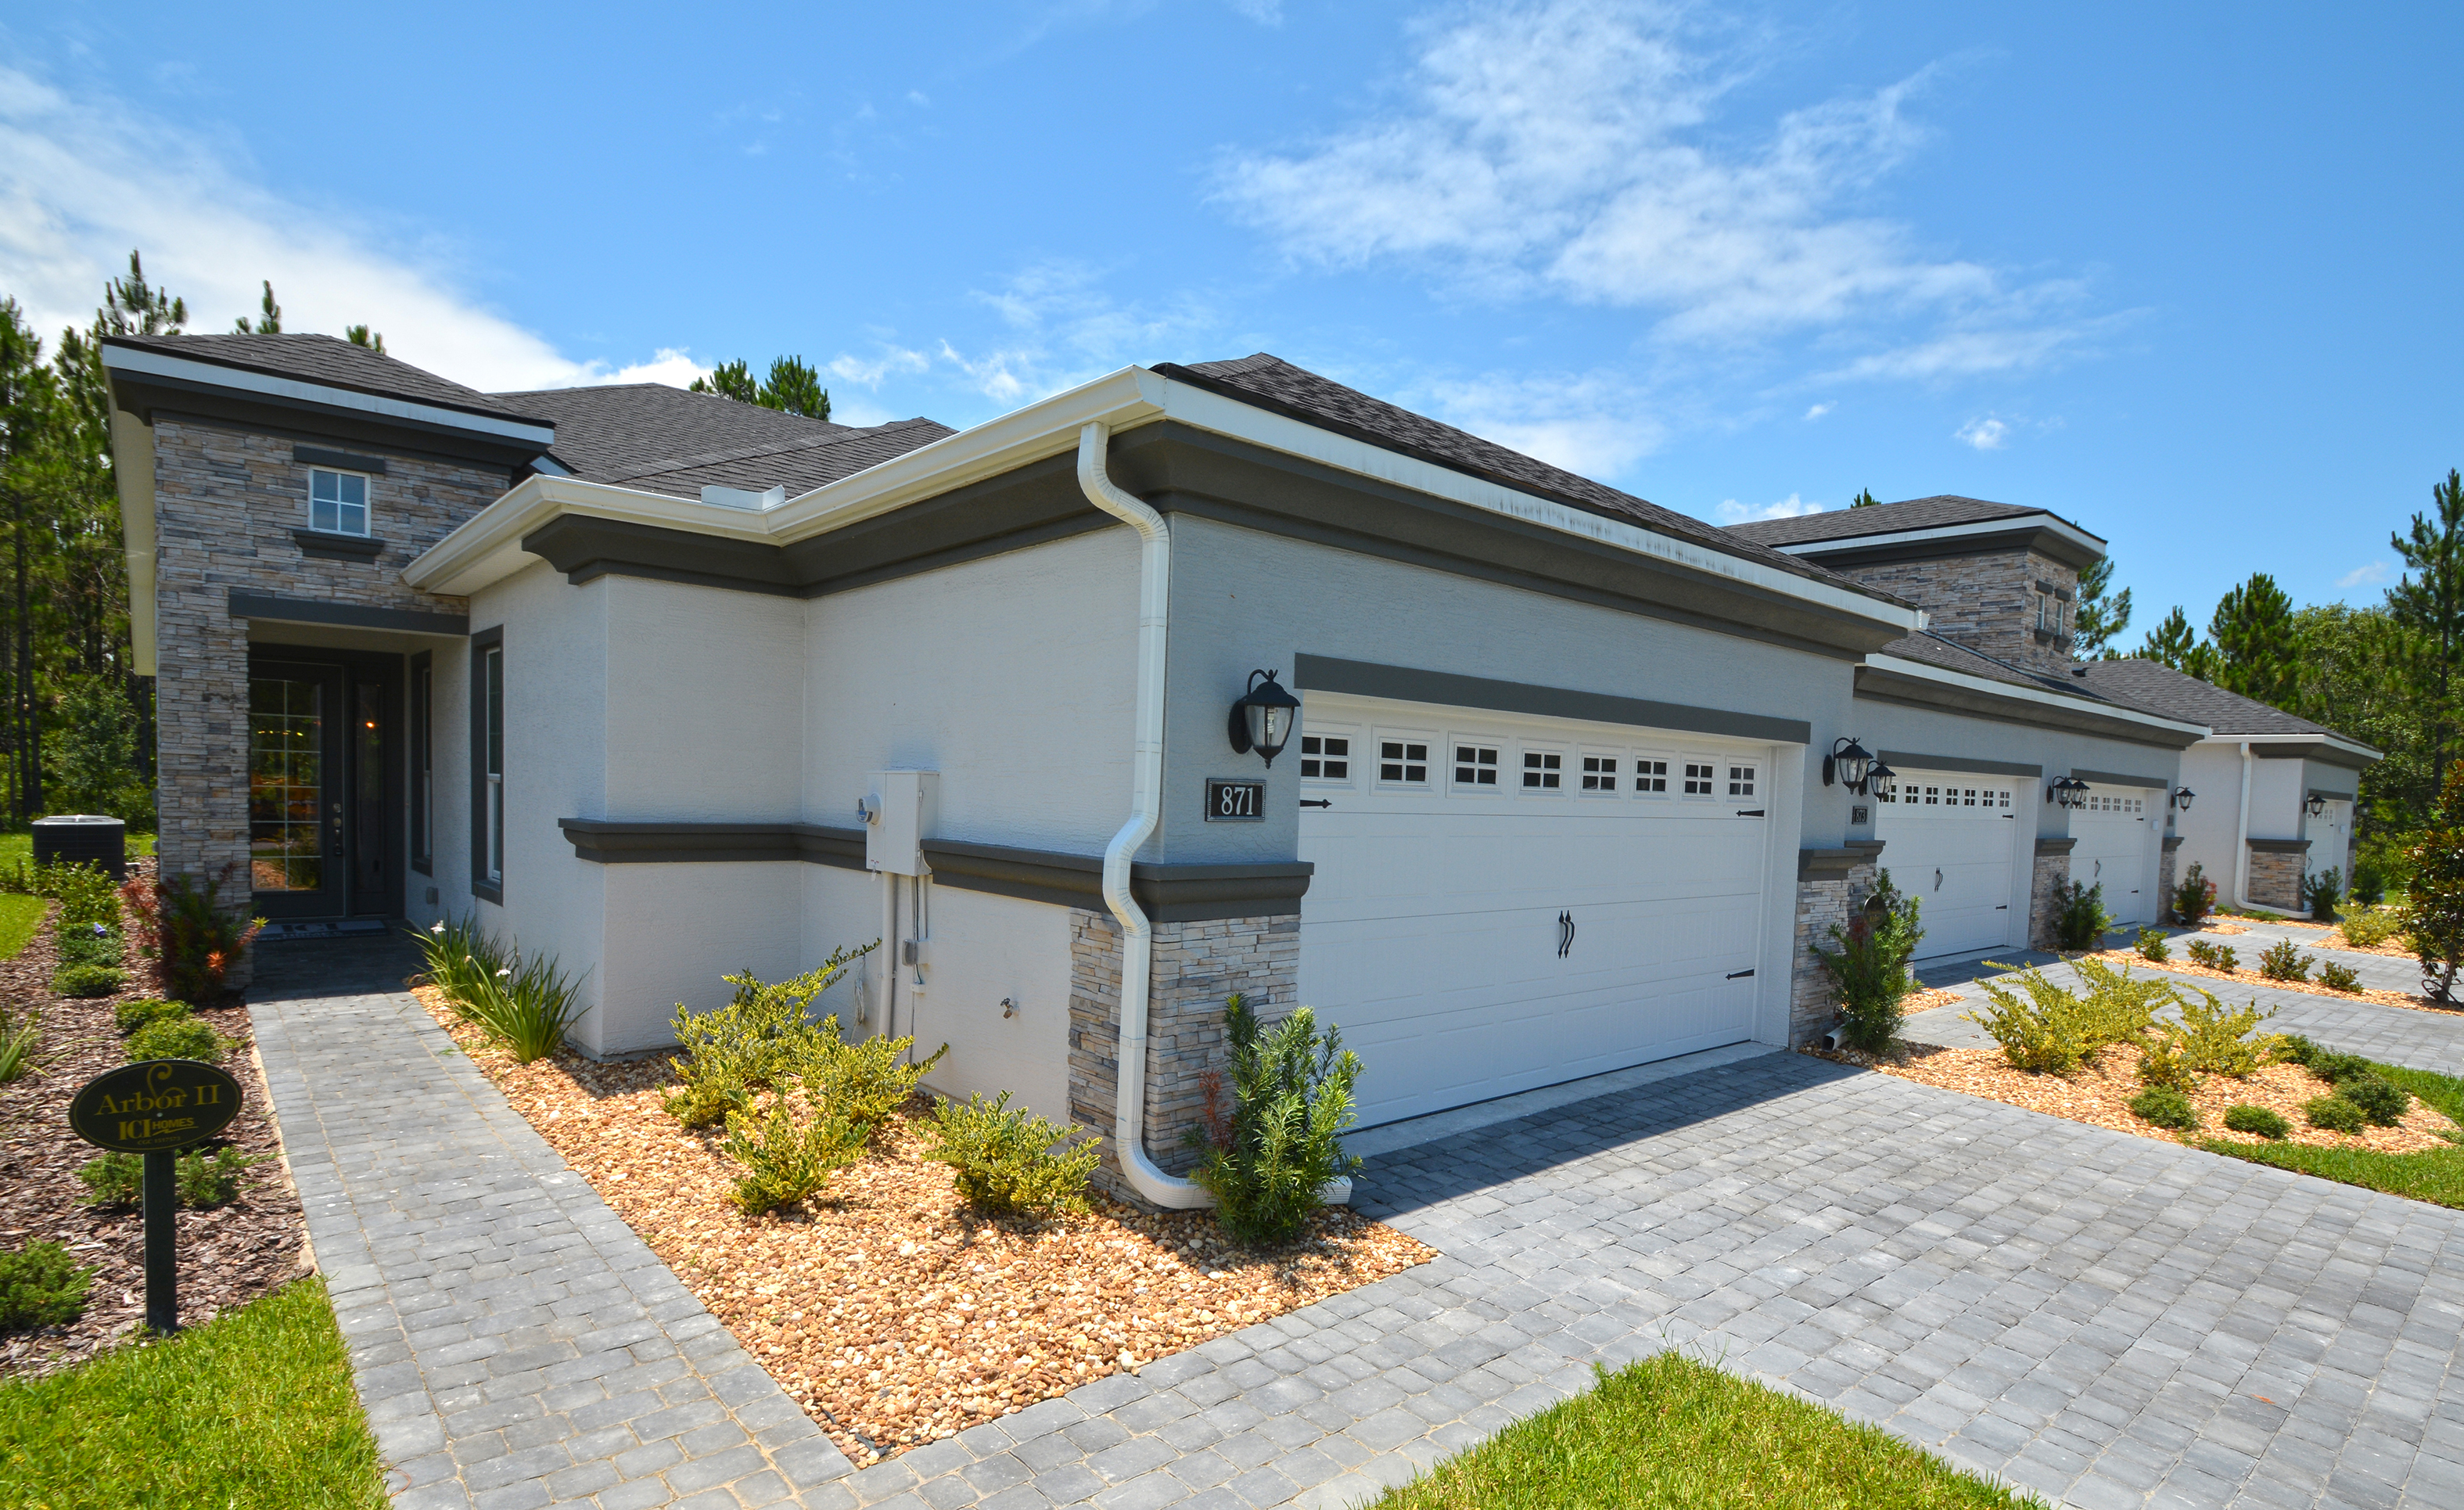 871 Pinewood Drive, Ormond Beach FL